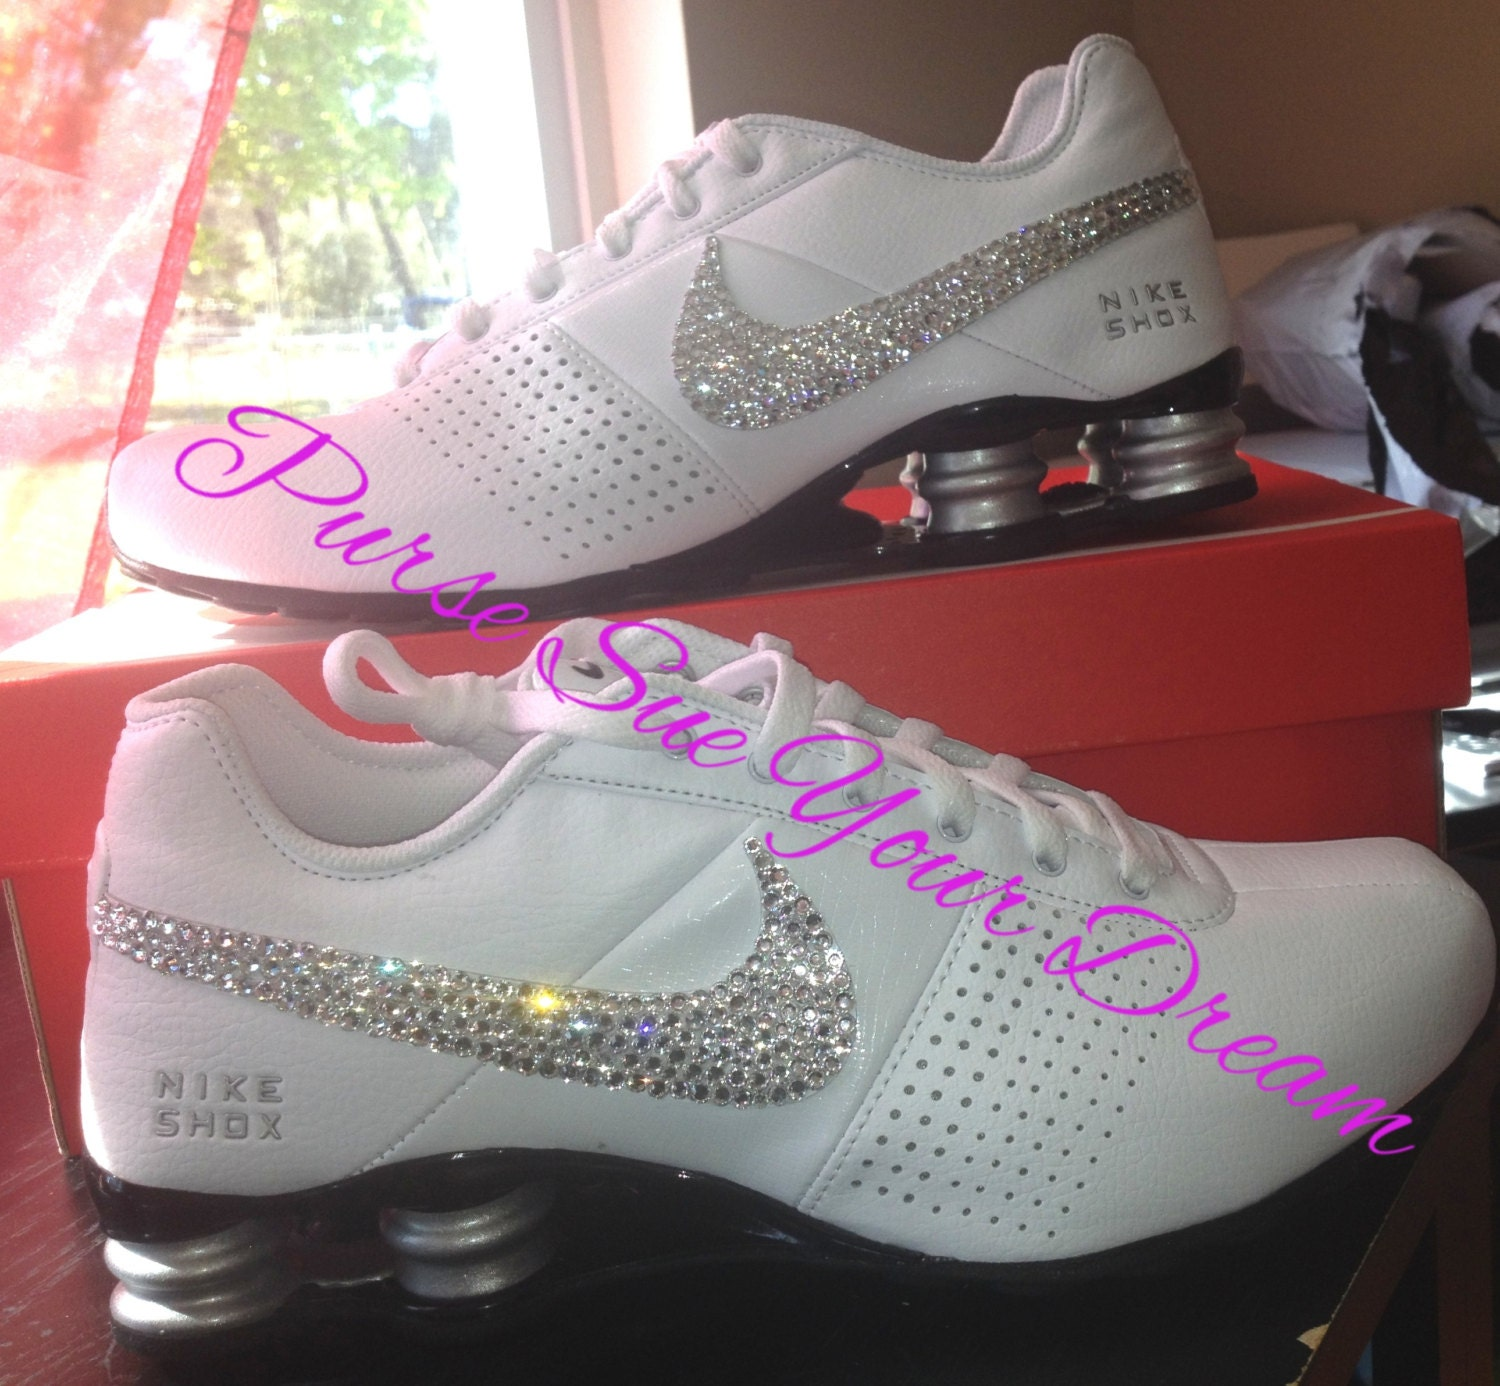 HKFYG Lee Shau Kee College - Womens White Nike Shox With Glitter Swoosh 52f4809b0